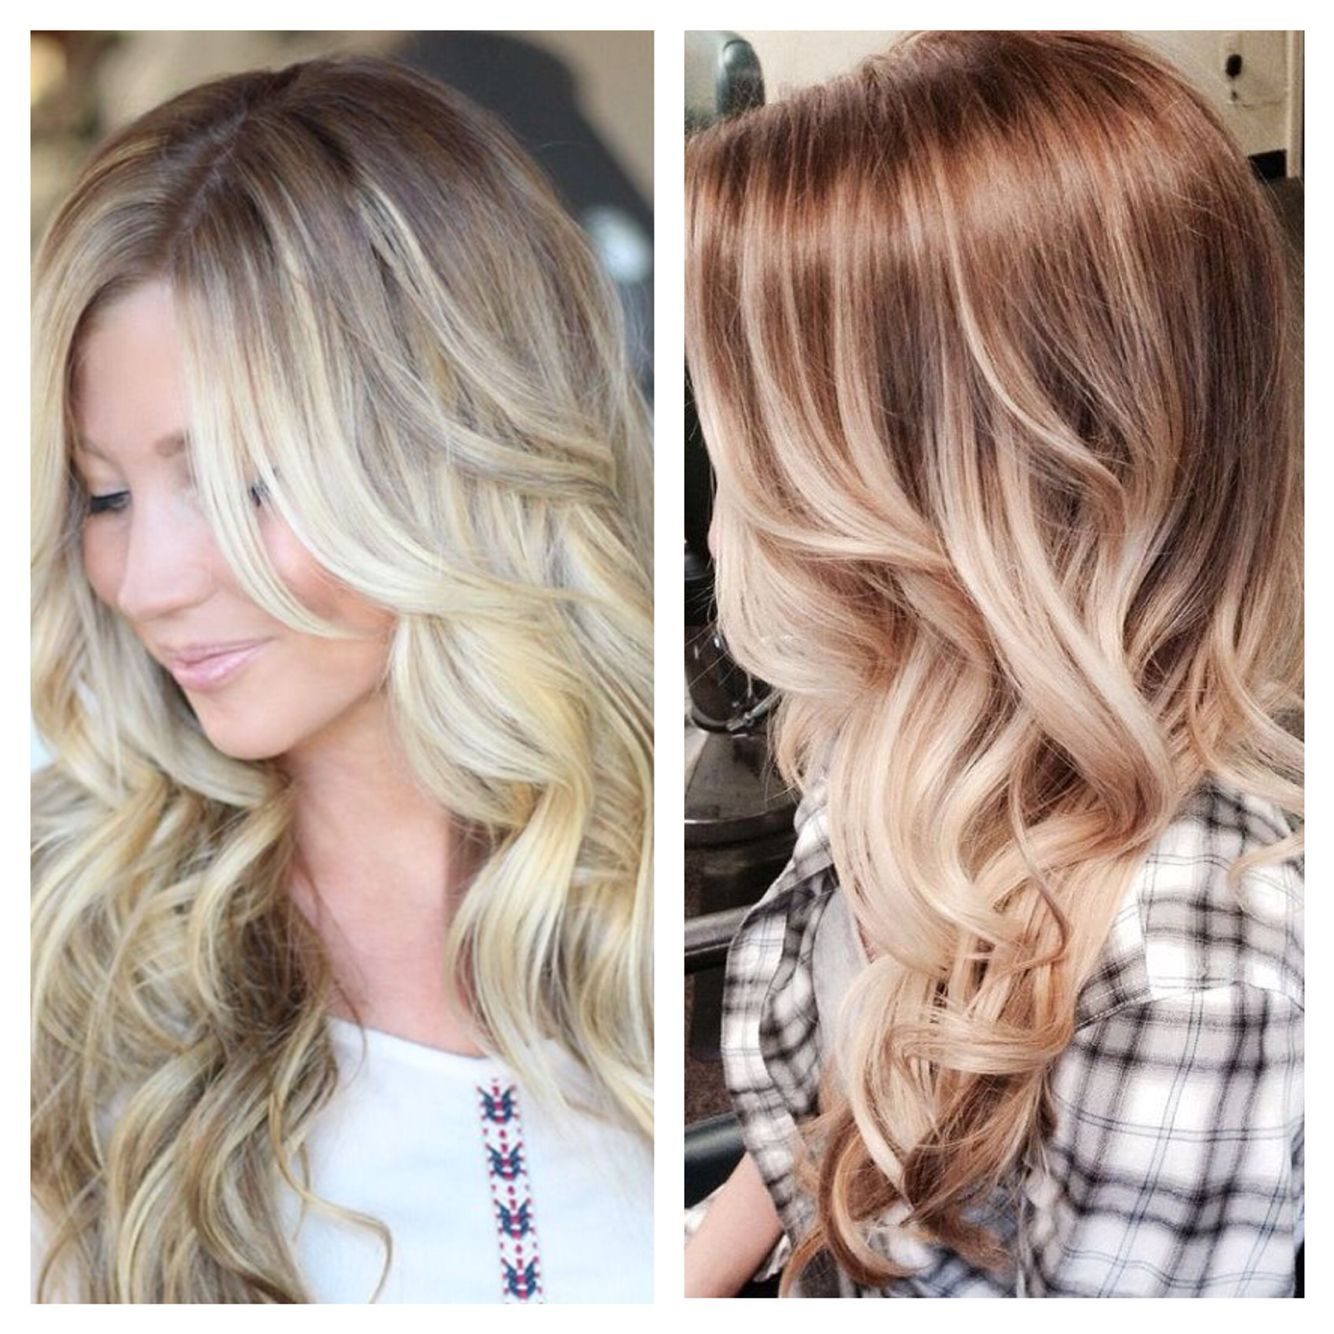 Cool Vs Warm Tortoise Shell Blondes I Currently Have Warm Blonde But Since I Have Cool Undertones I M Going To Get It Toned Thi Ecaille Hair Light Hair Hair